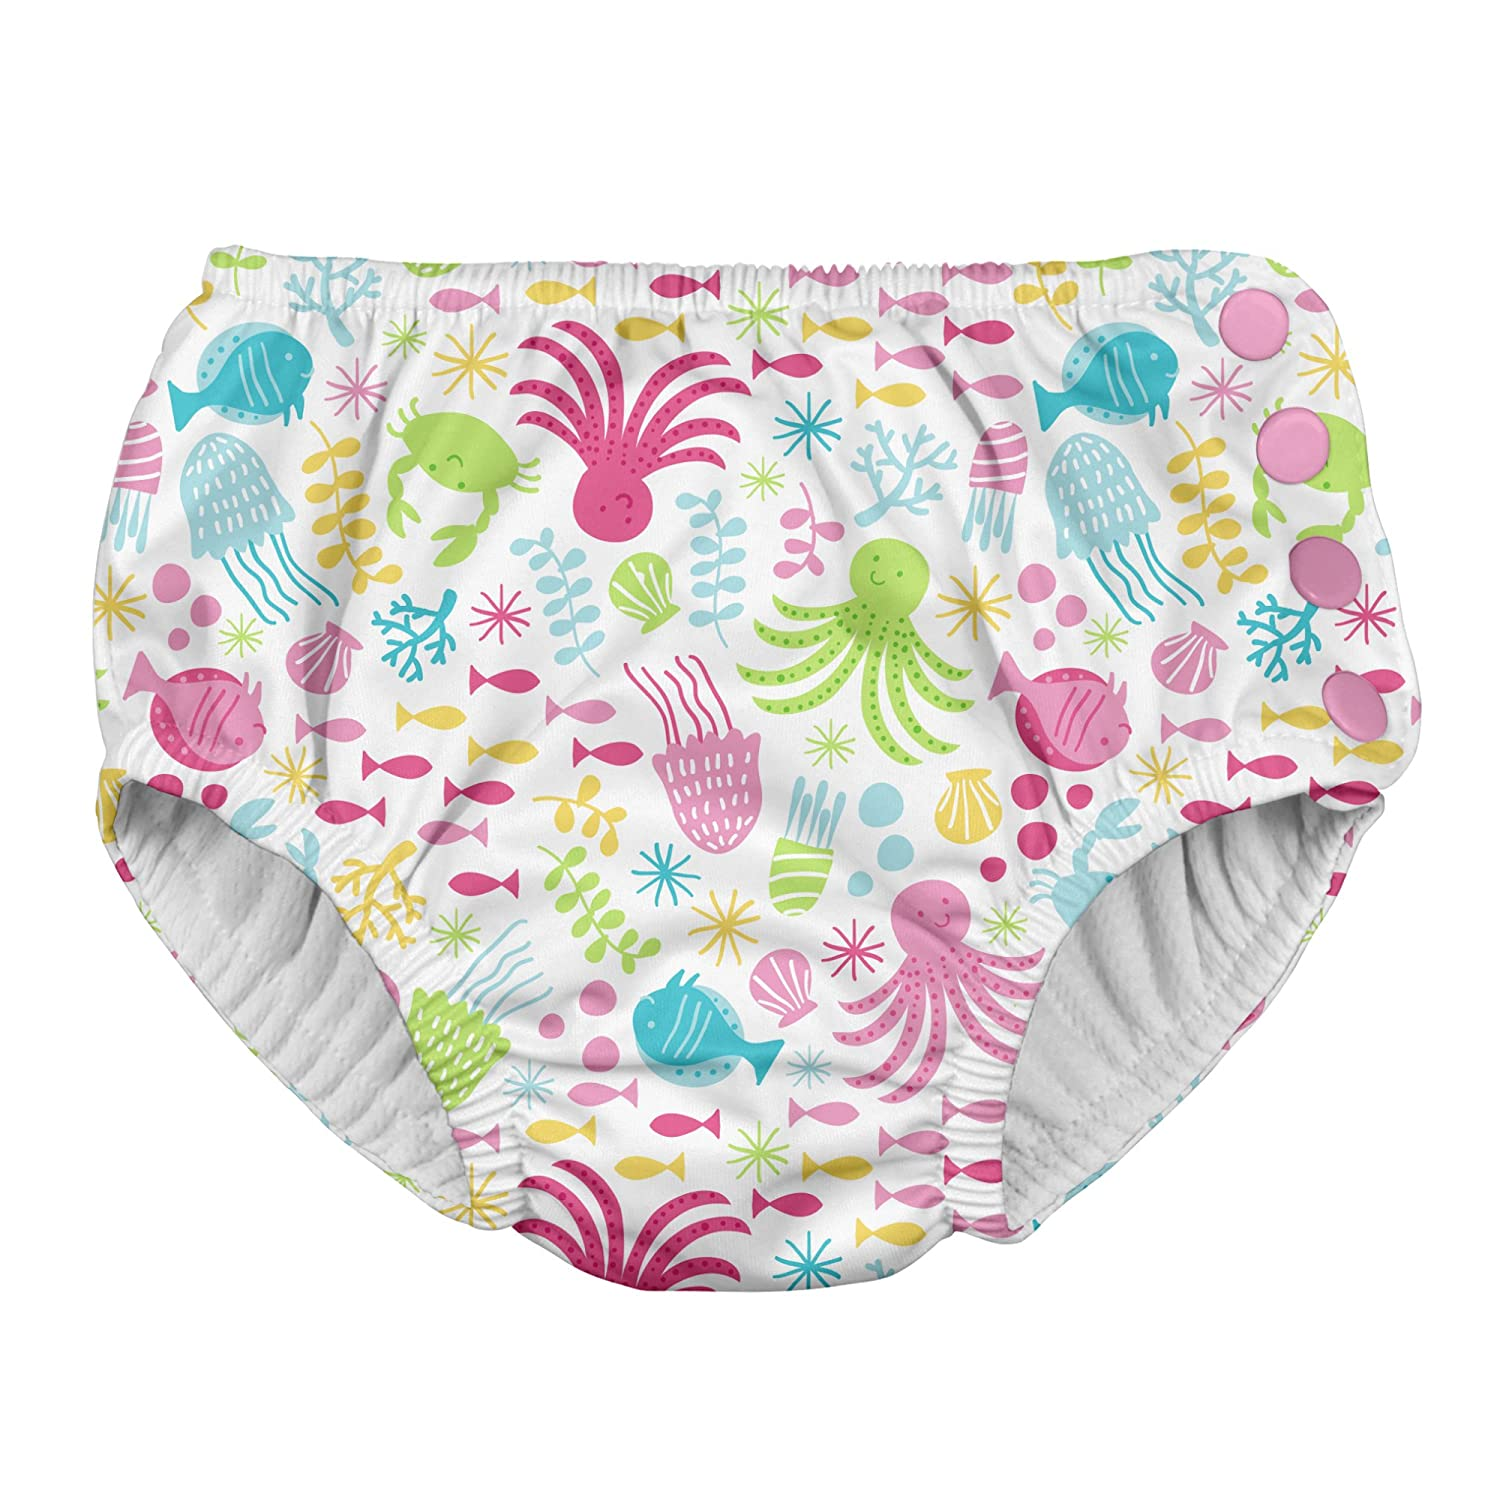 i Play Swim Nappy, 3 to 4 Years, White Sea Petals JellyBean/First Steps 701050-0300-48